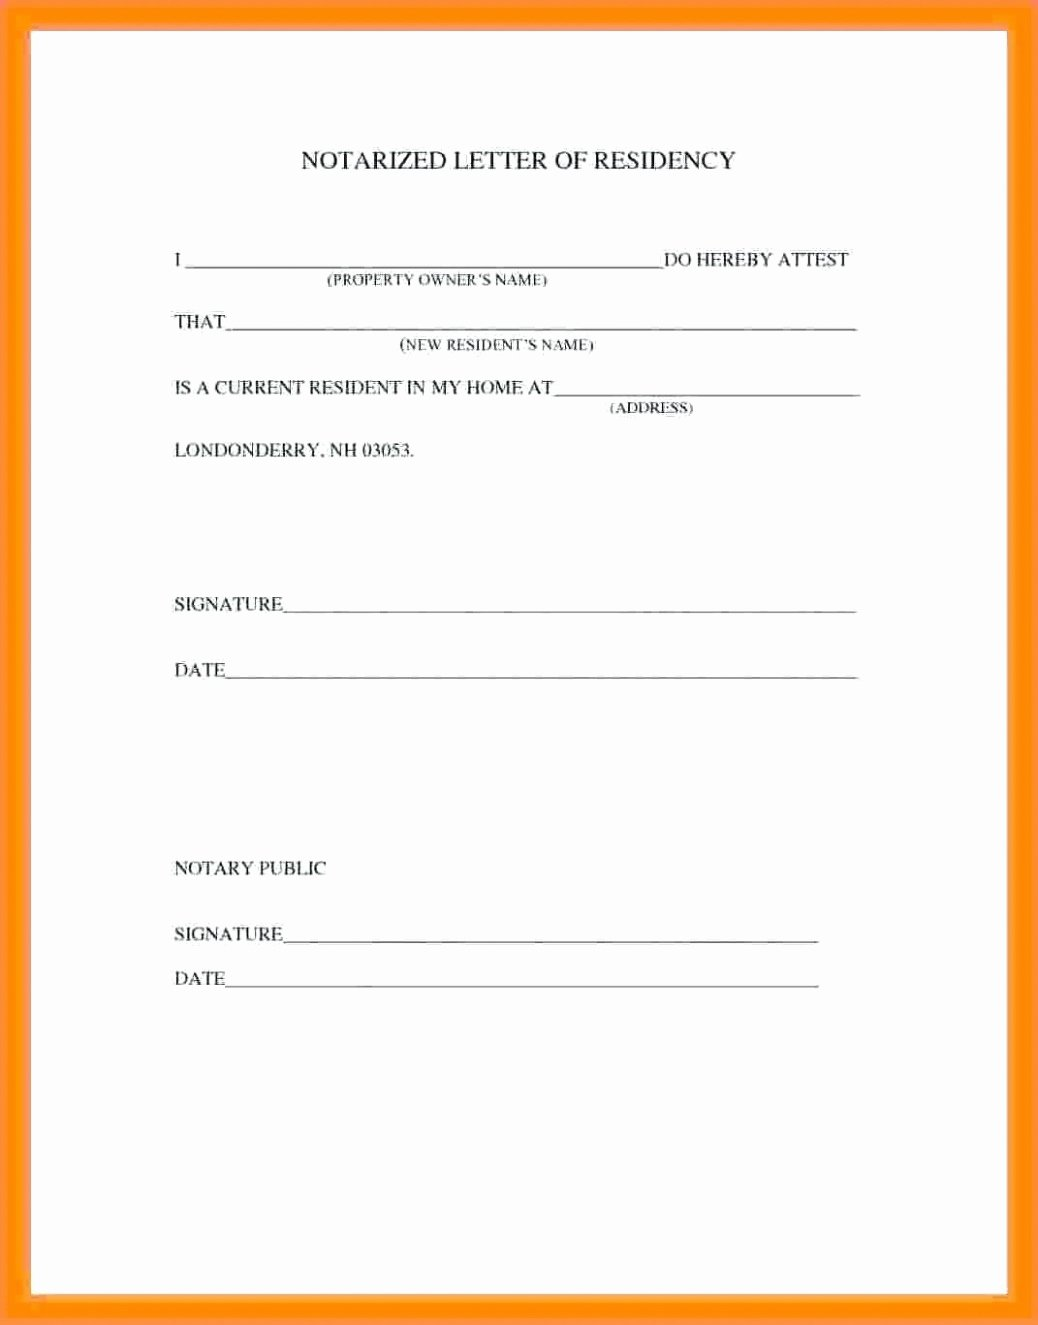 Printable Notarized Letter Of Residency Template Unique Proof Residency Letter Notarized Template Gallery